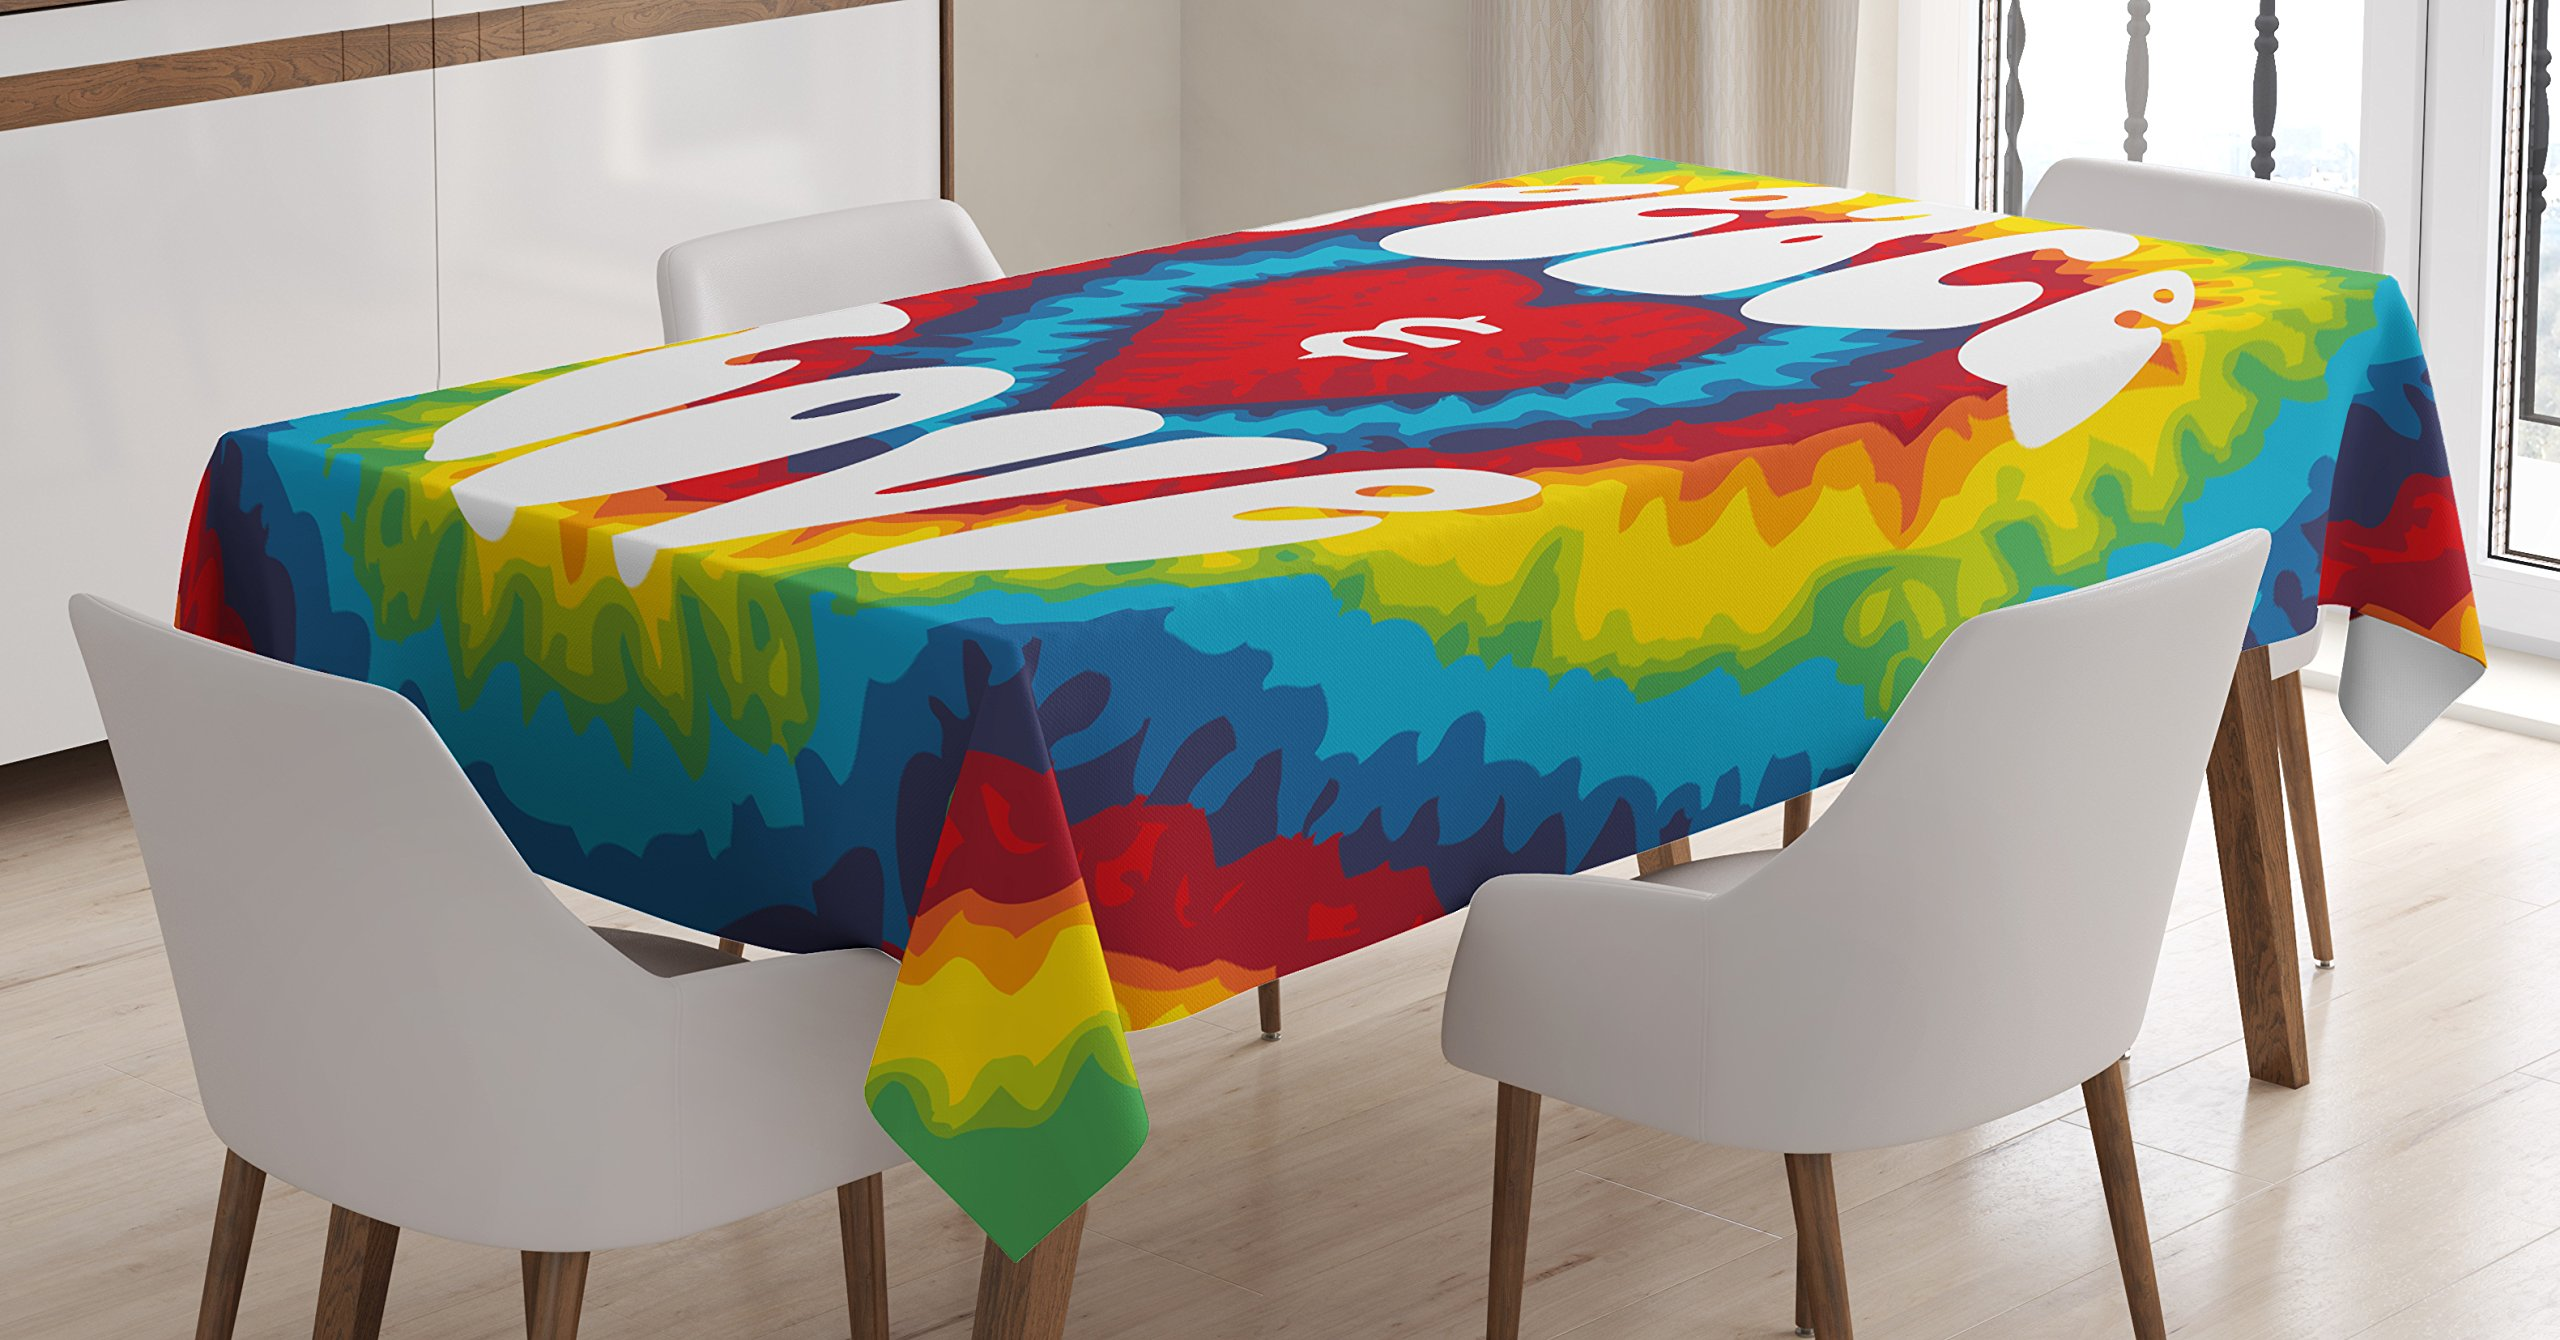 Ambesonne 70s Party Decorations Tablecloth, Peace and Love Groovy Tie Dye Heart Shaped Abstract Hippie Rainbow, Dining Room Kitchen Rectangular Table Cover, 52 W X 70 L inches, Multicolor